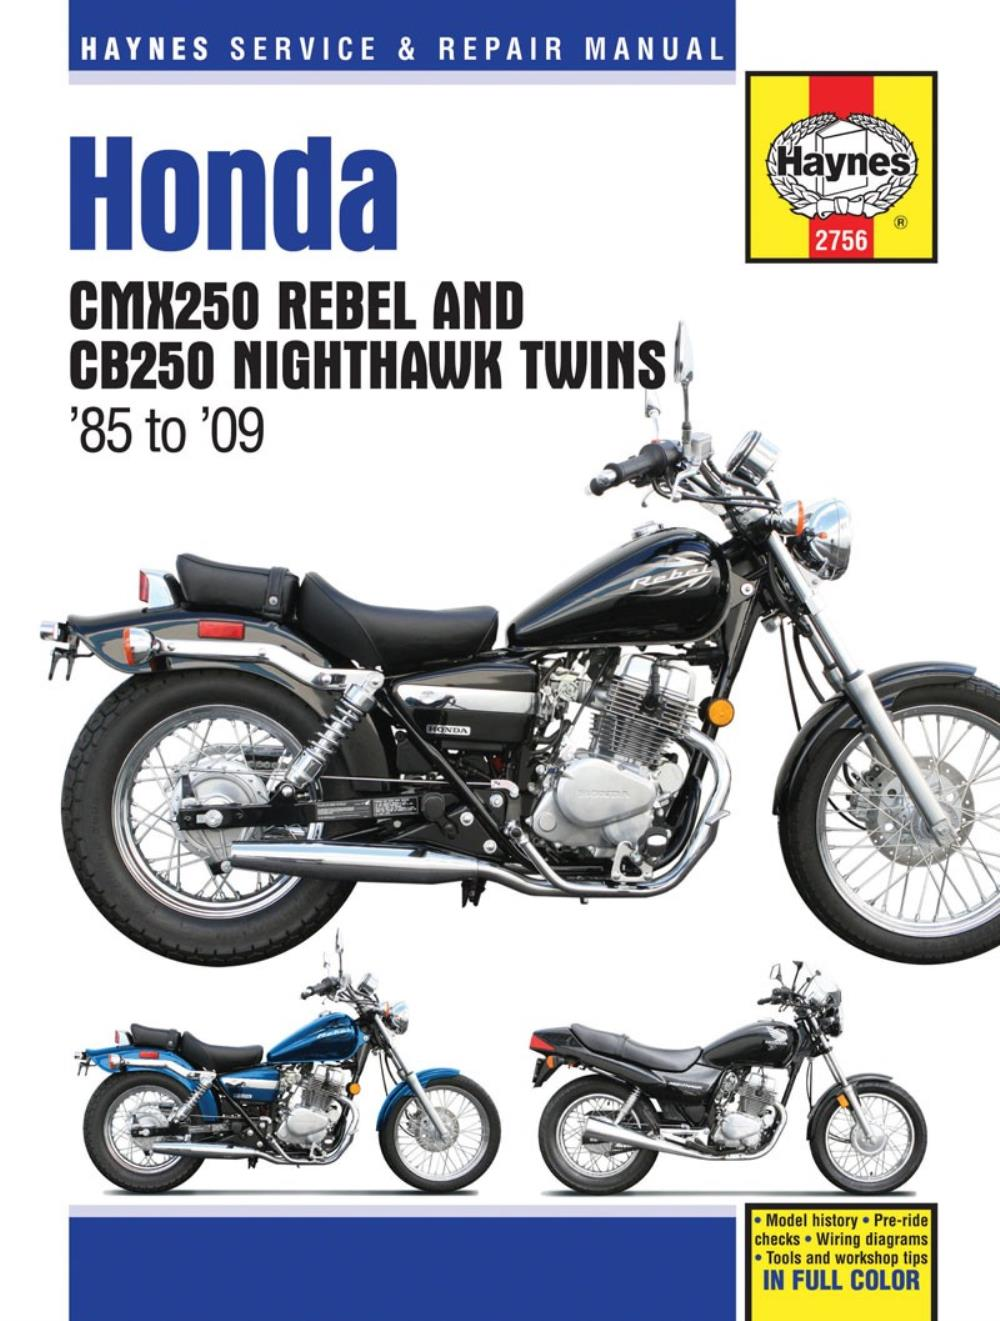 2005 Honda Rebel Wiring Diagram Cb250 Harness Manual Haynes For Cmx 250 C5 Ebay Rh Co Uk 1976 Motorcycle Schematics